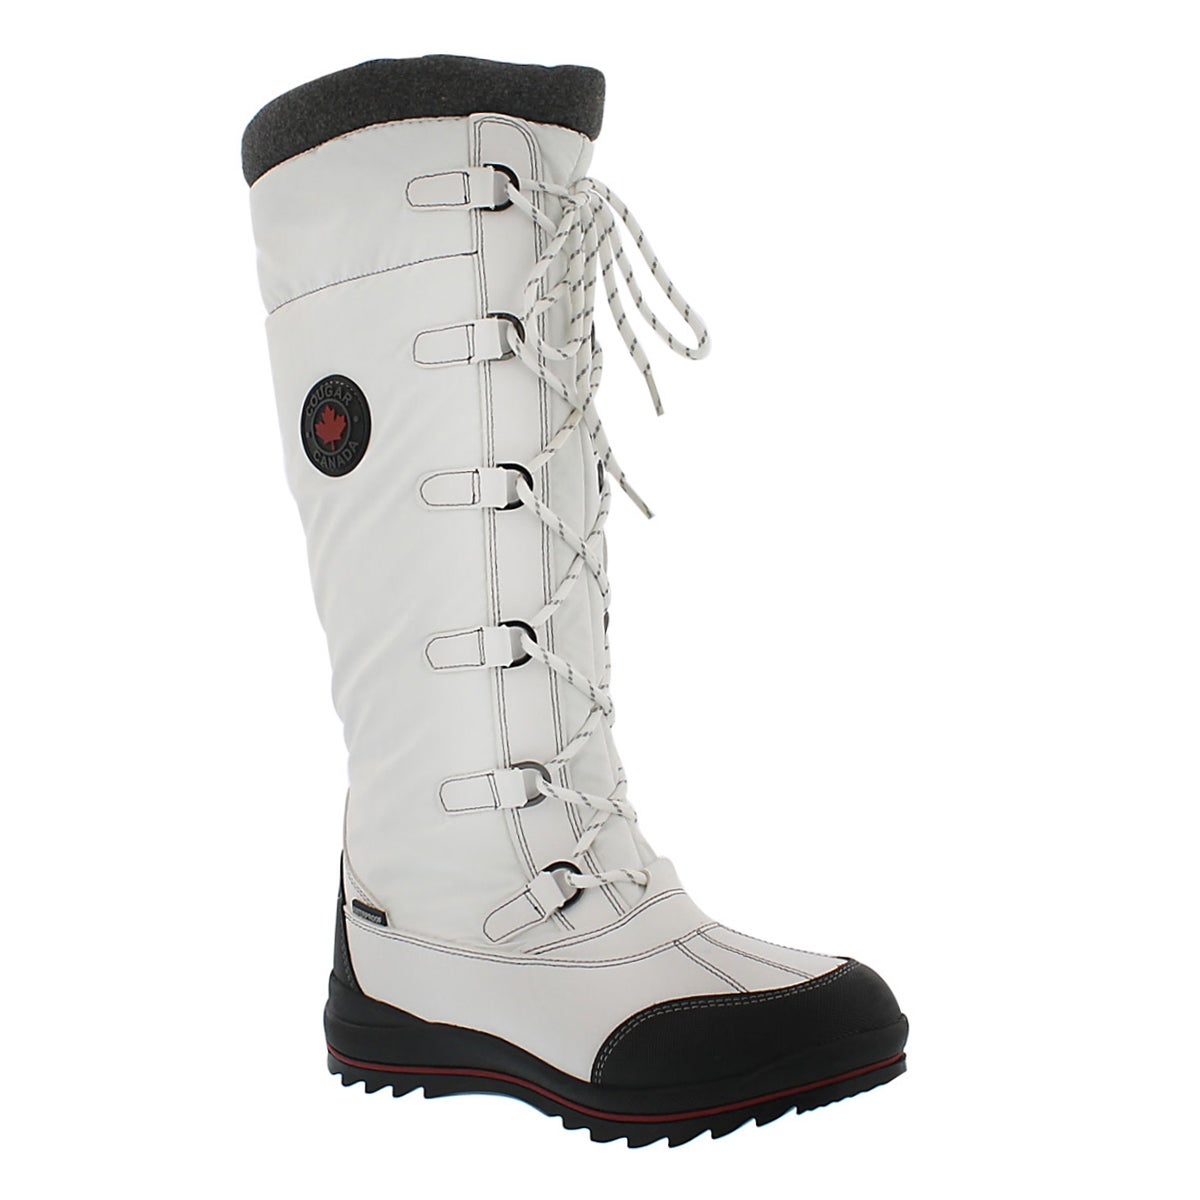 """waterproof cougar women Womens waterproof leather boots for the autumn  making them some of the best womens waterproof leather boots for any  """"cougar women's connect boots."""